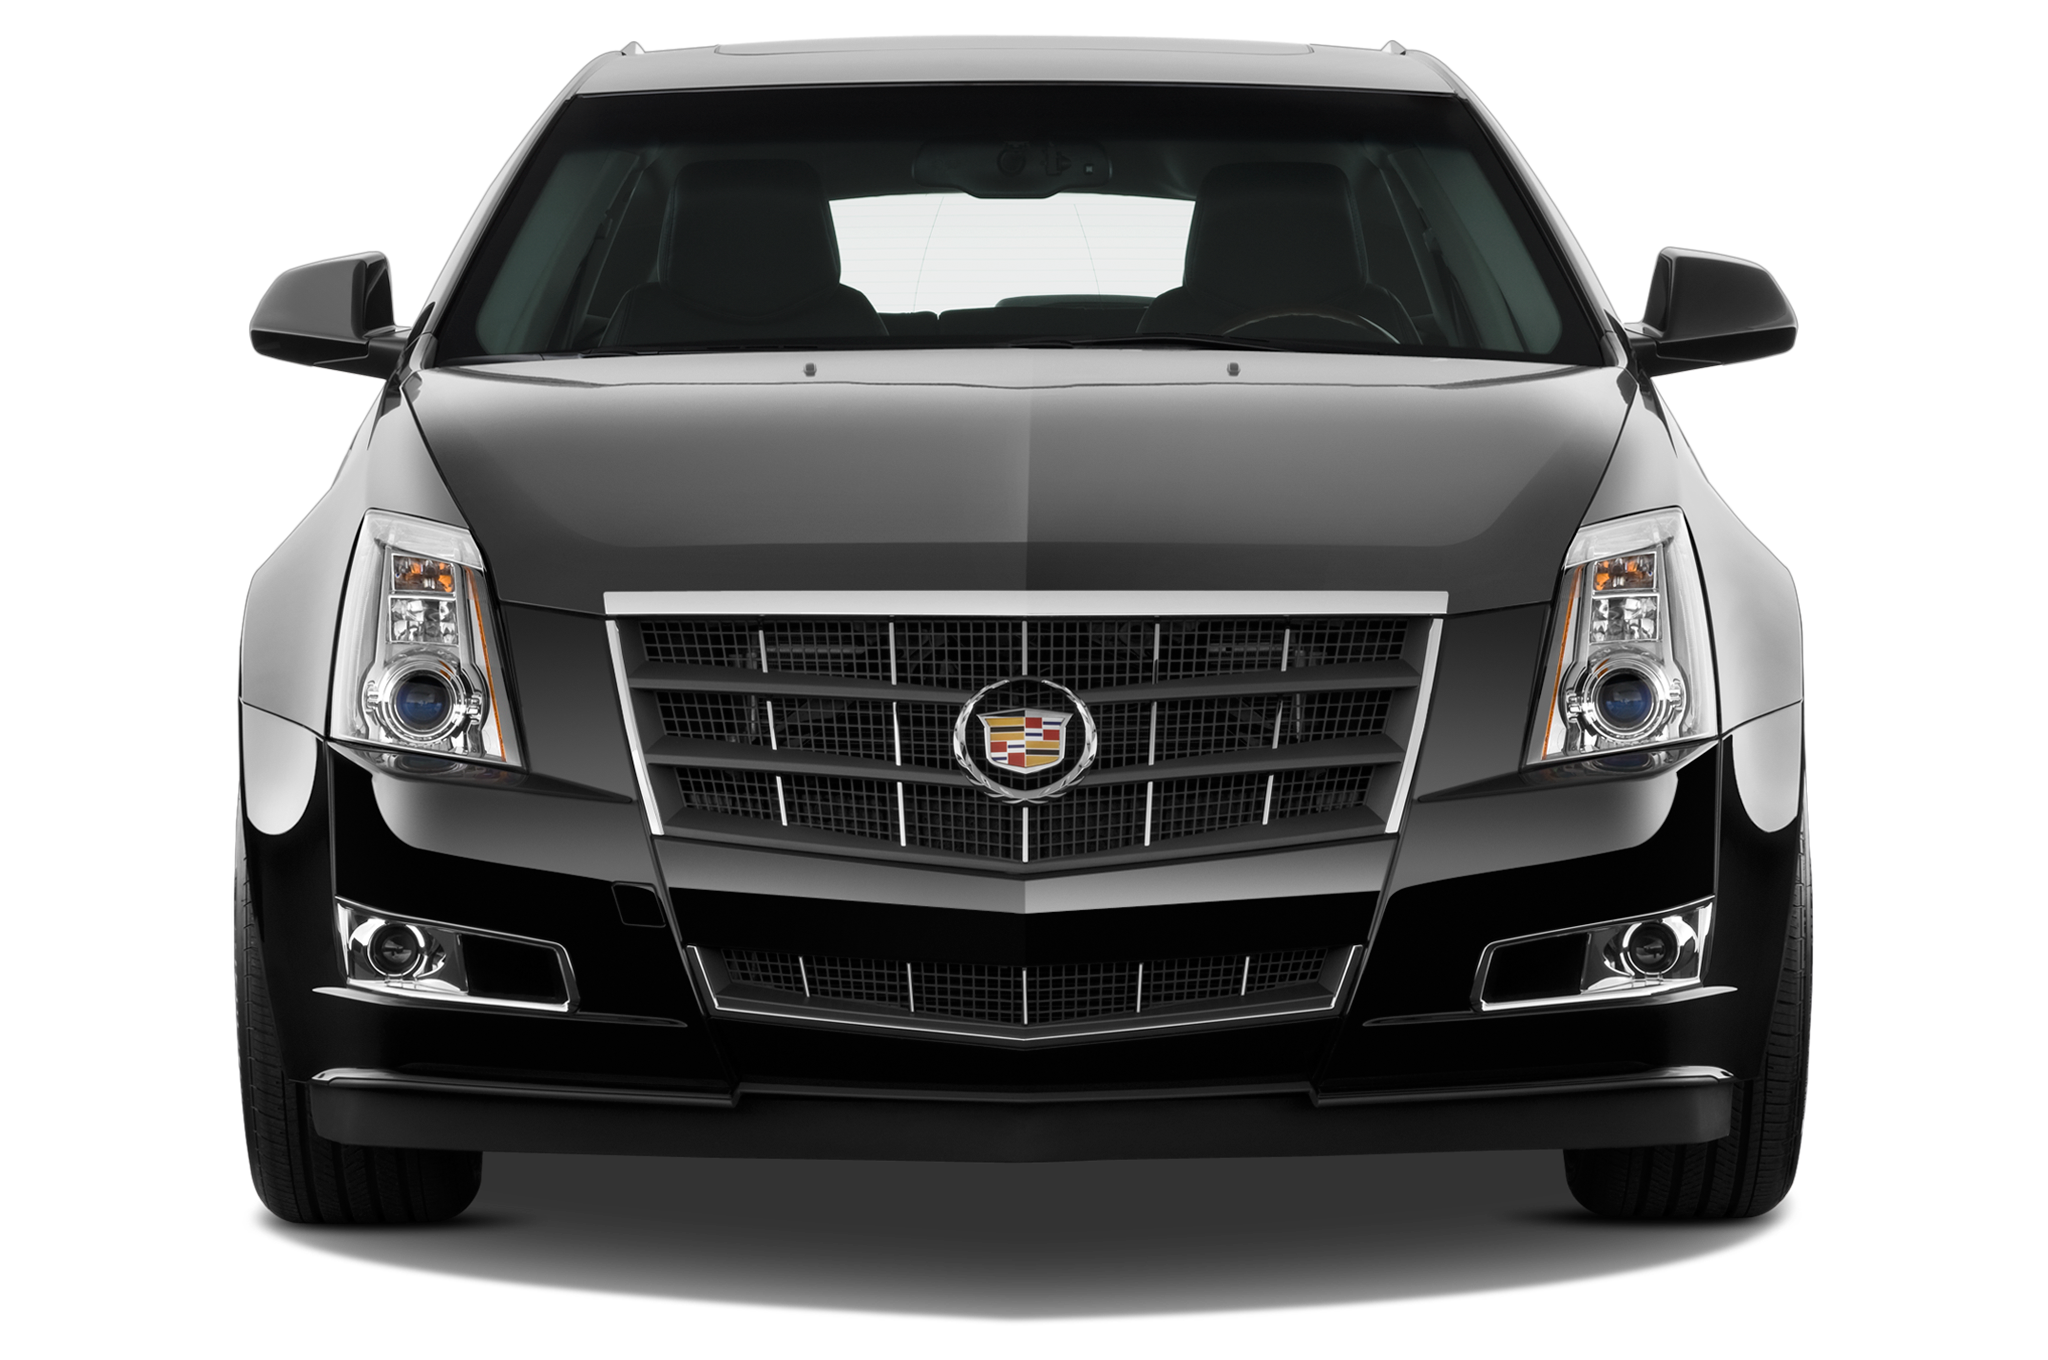 2010 cadillac cts sport wagon cadillac cts wagon. Black Bedroom Furniture Sets. Home Design Ideas